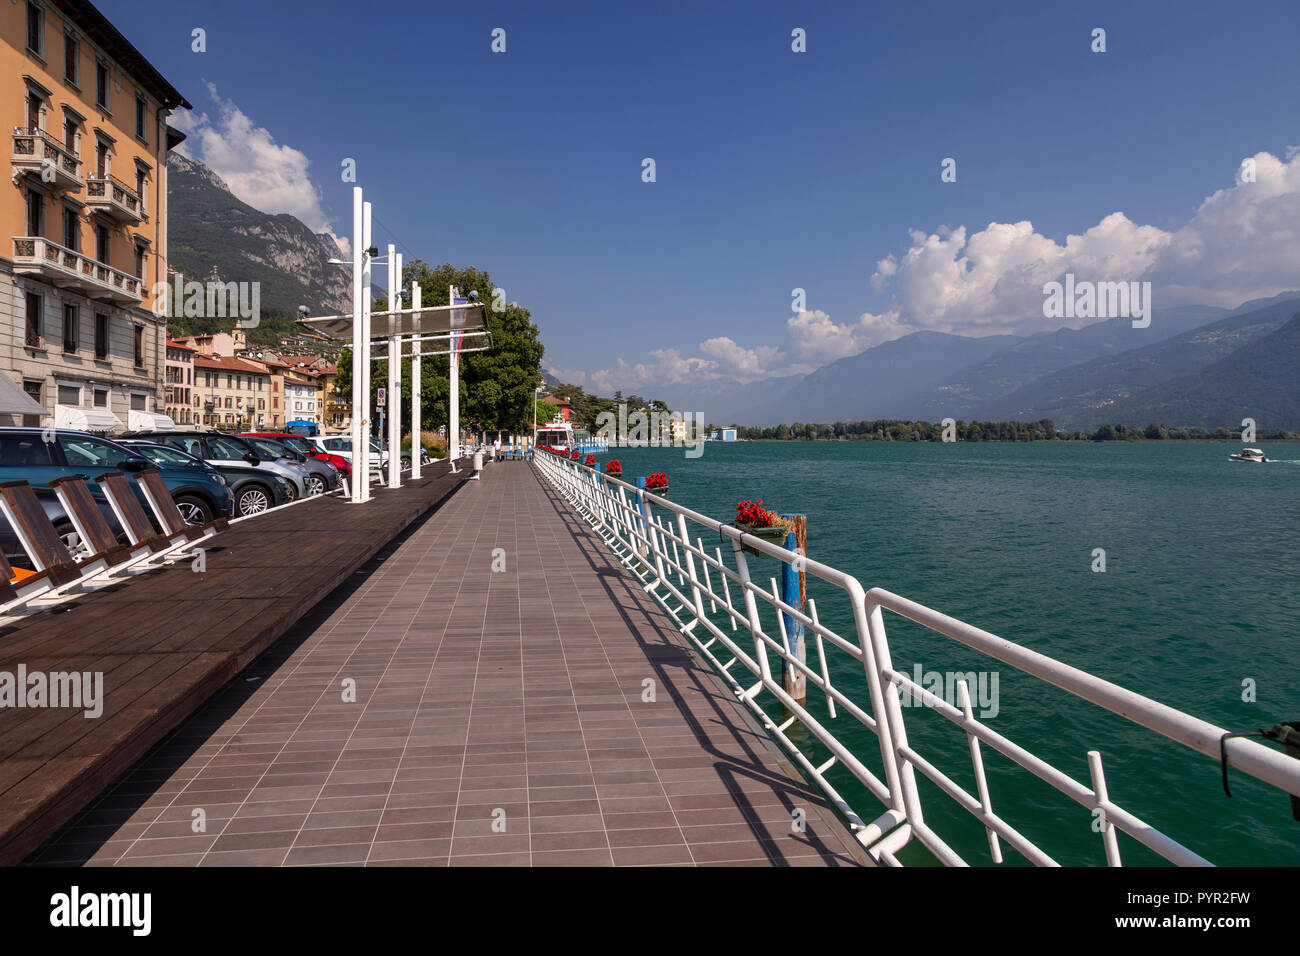 Lakeside promenade at Lovere on Lake Iseo, italy - Stock Image